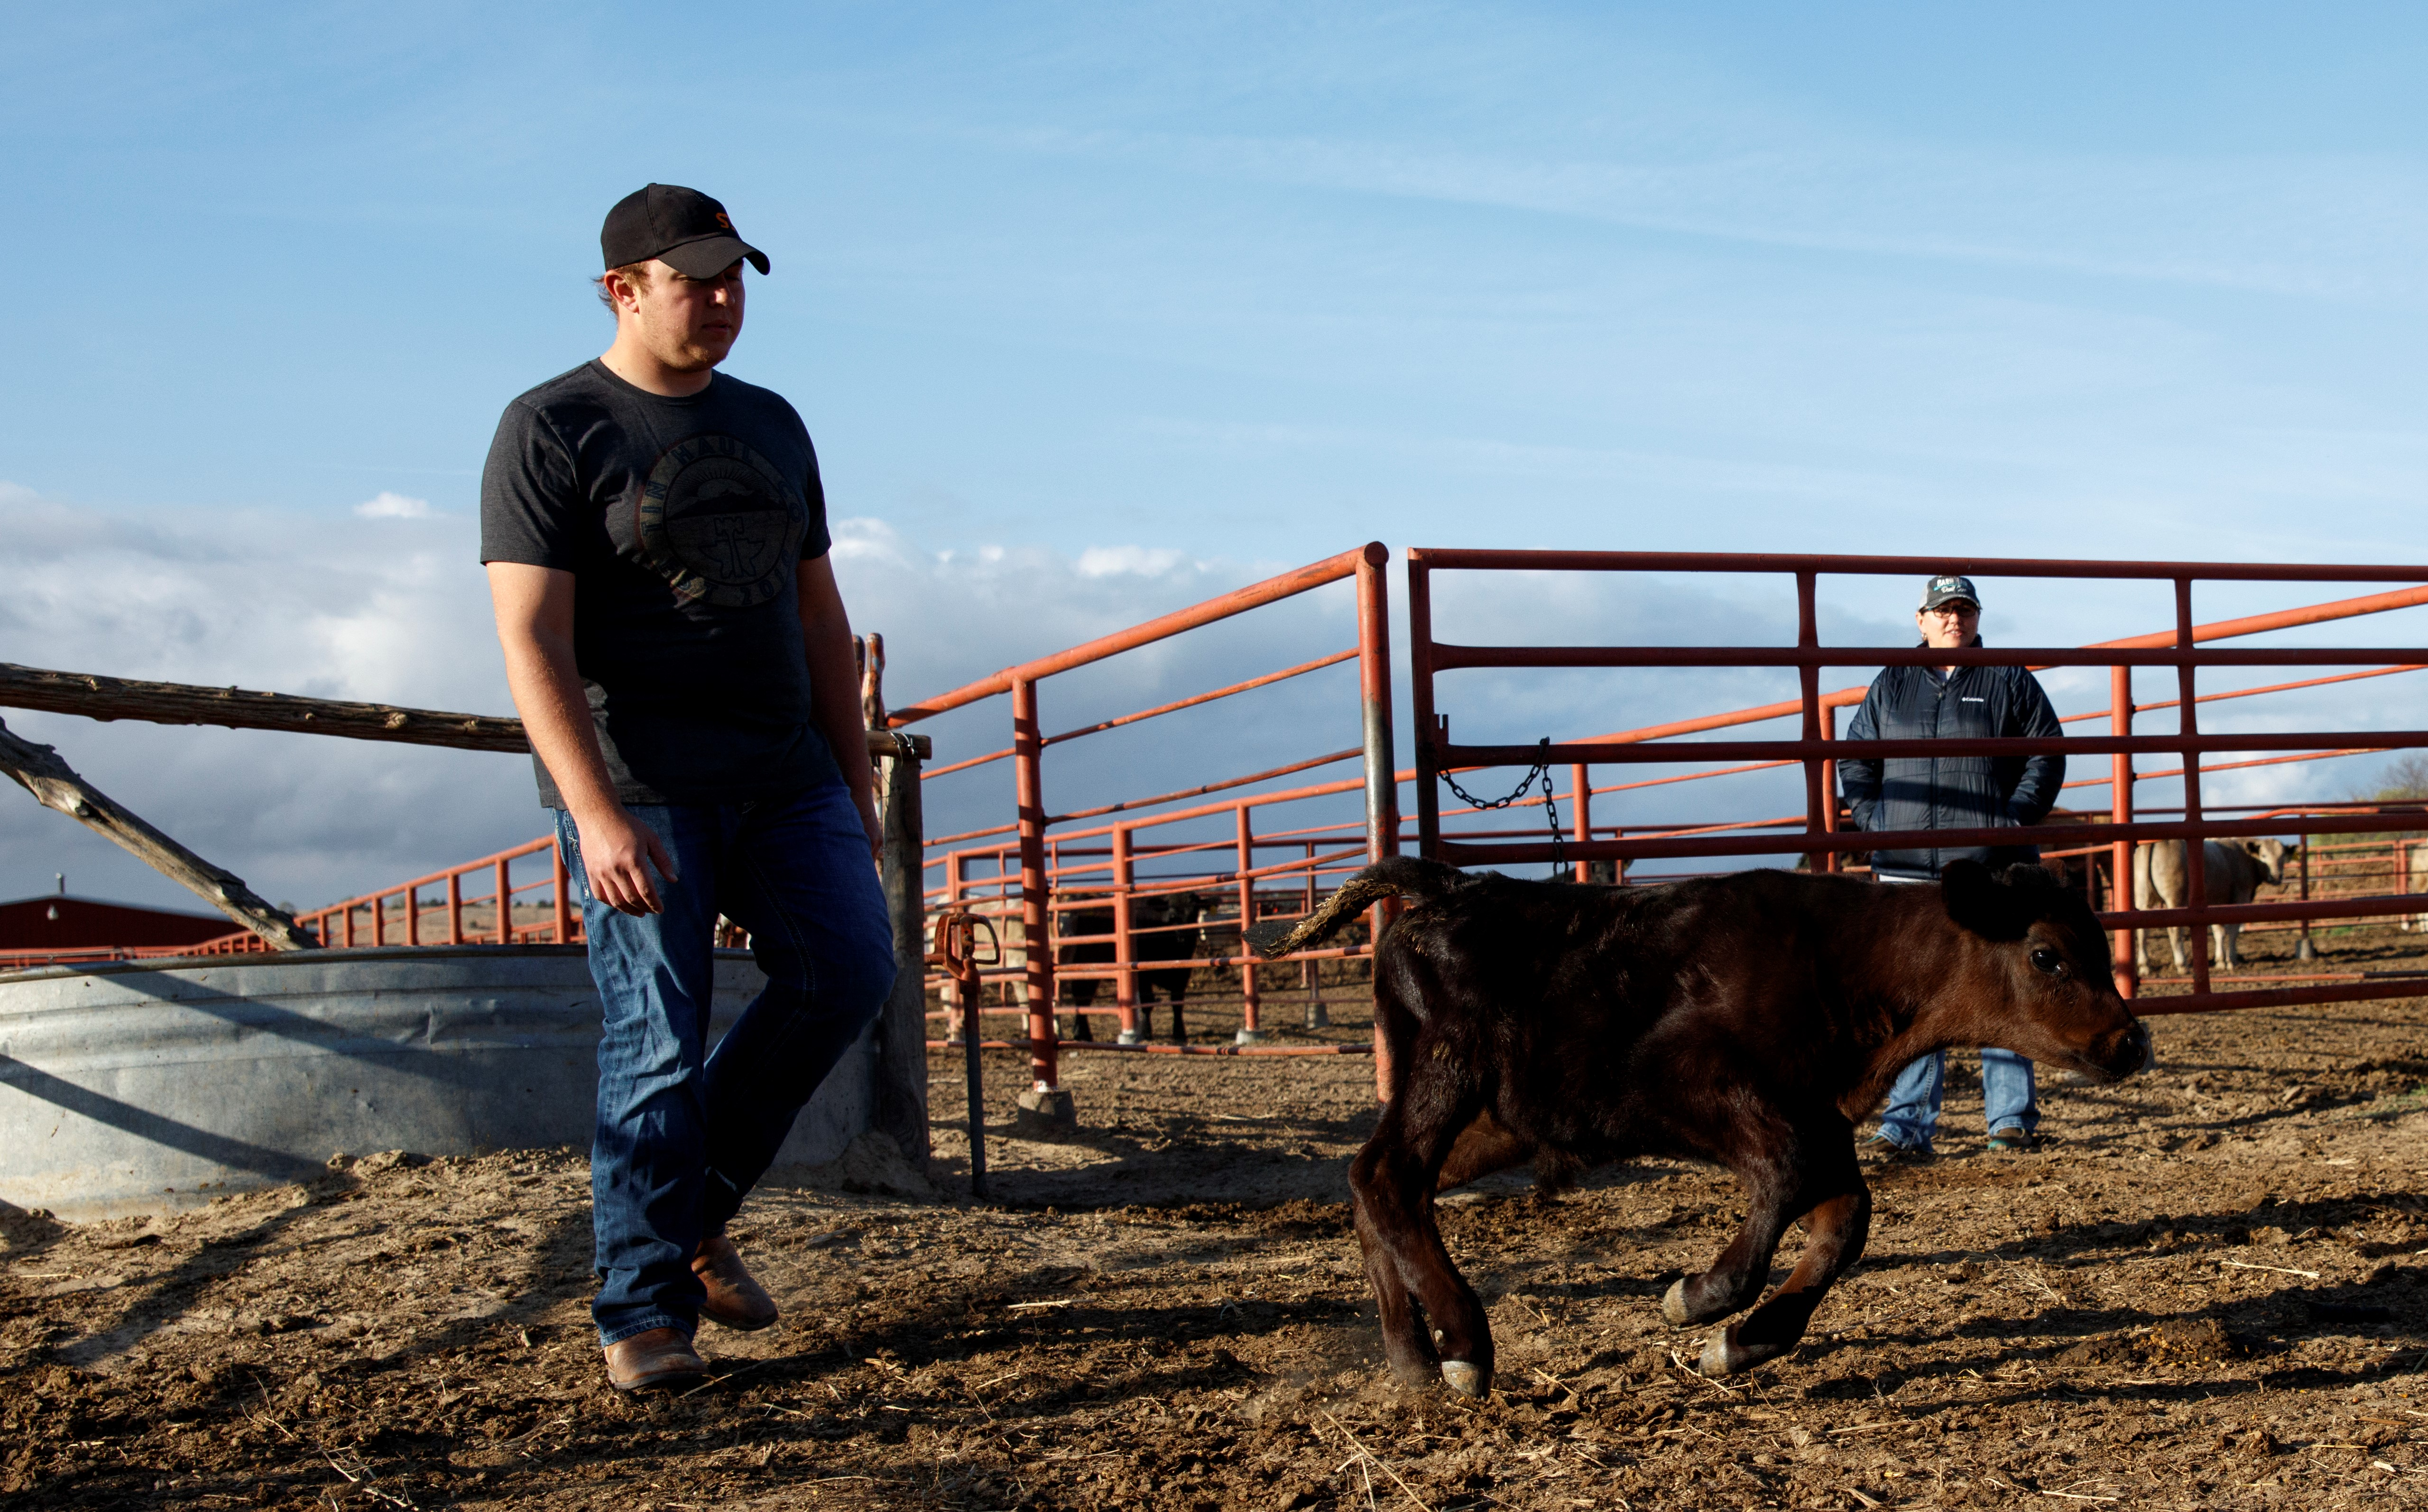 A student moves a calf at the NCTA farm during animal science class. (Photo by Craig Chandler / NCTA)